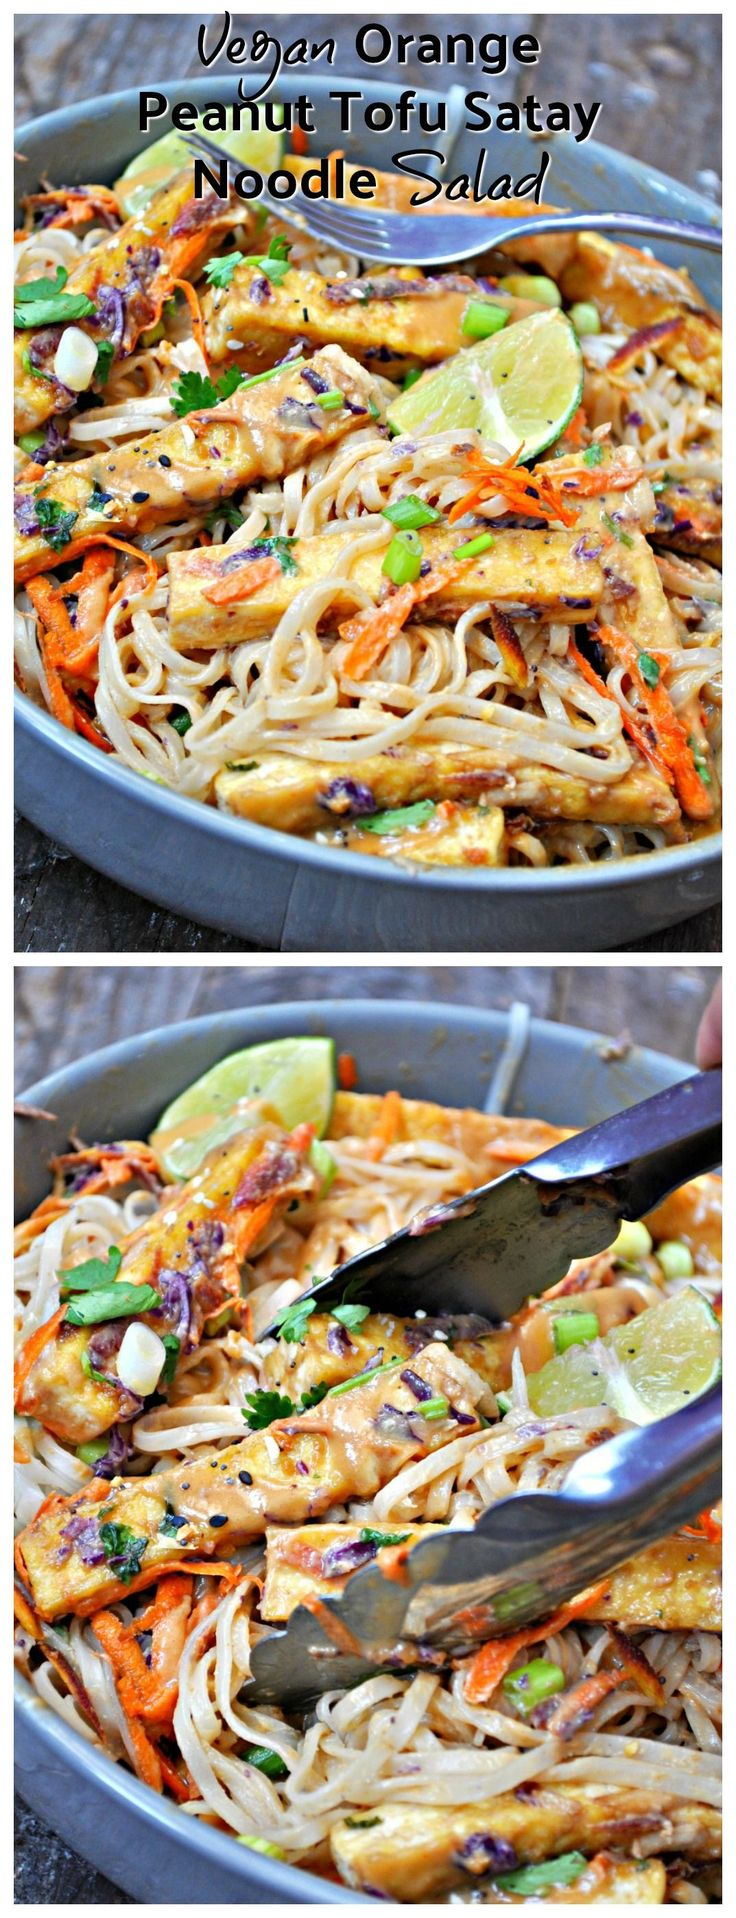 Crispy tofu, veggies and rice noodles tossed with an orange peanut satay dressing. This noodle salad is quick, crazy flavorful, healthy and gluten free!